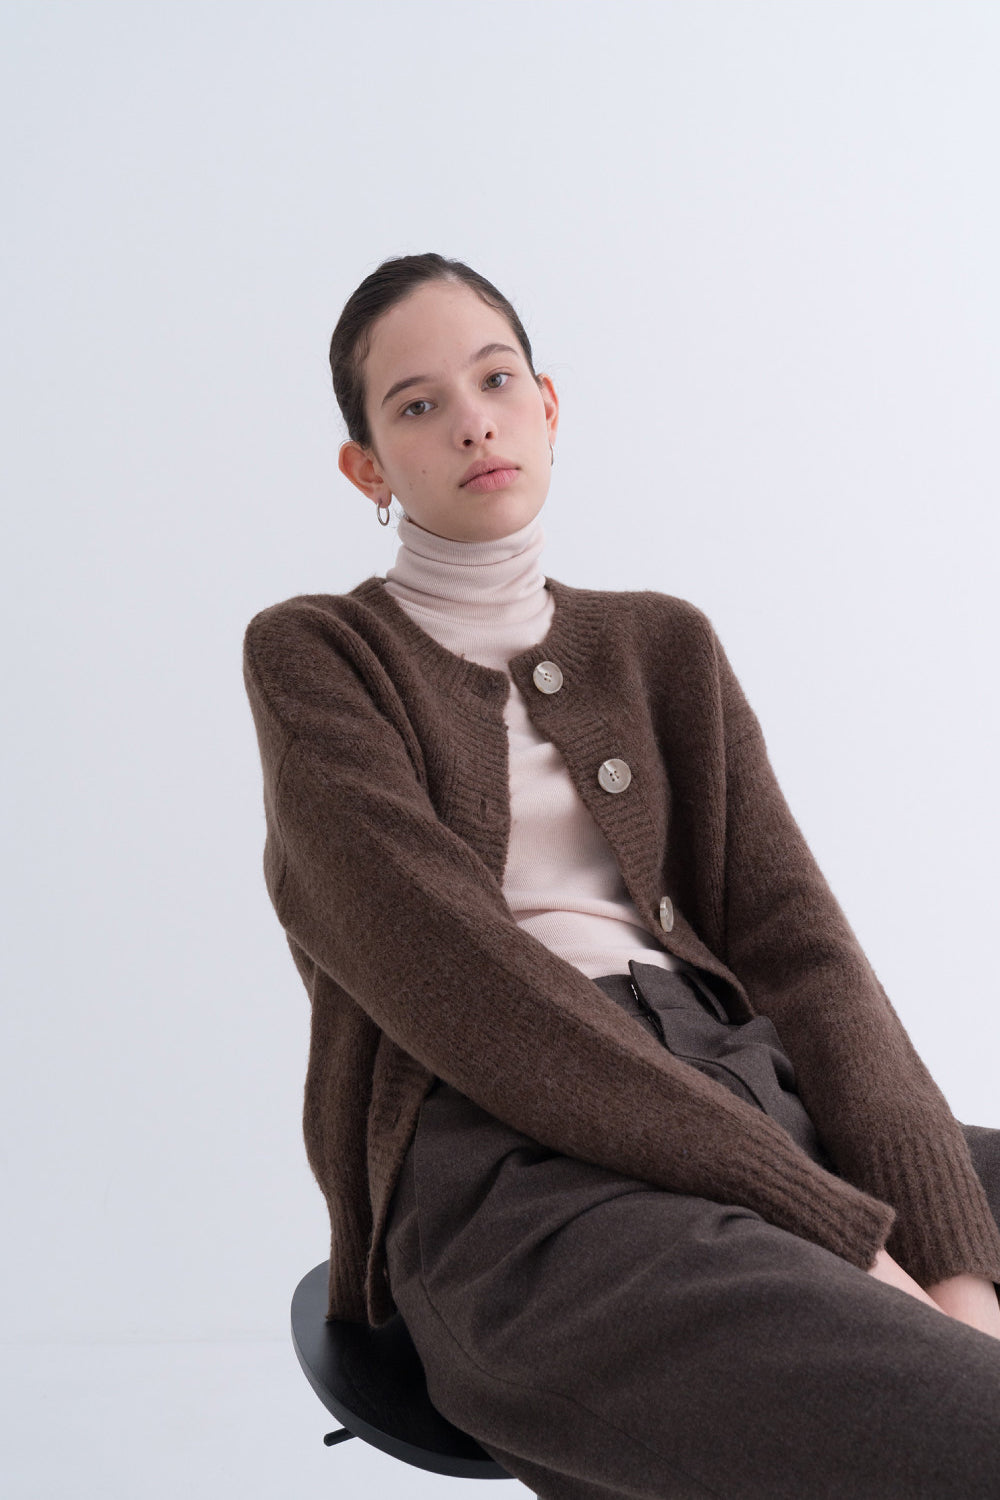 NOTA Yak Soft Cardigan Sky Brown Modest Long-Sleeve Women Loose Knitwear, Front Buttons, Round Neckline in Wool and Yak